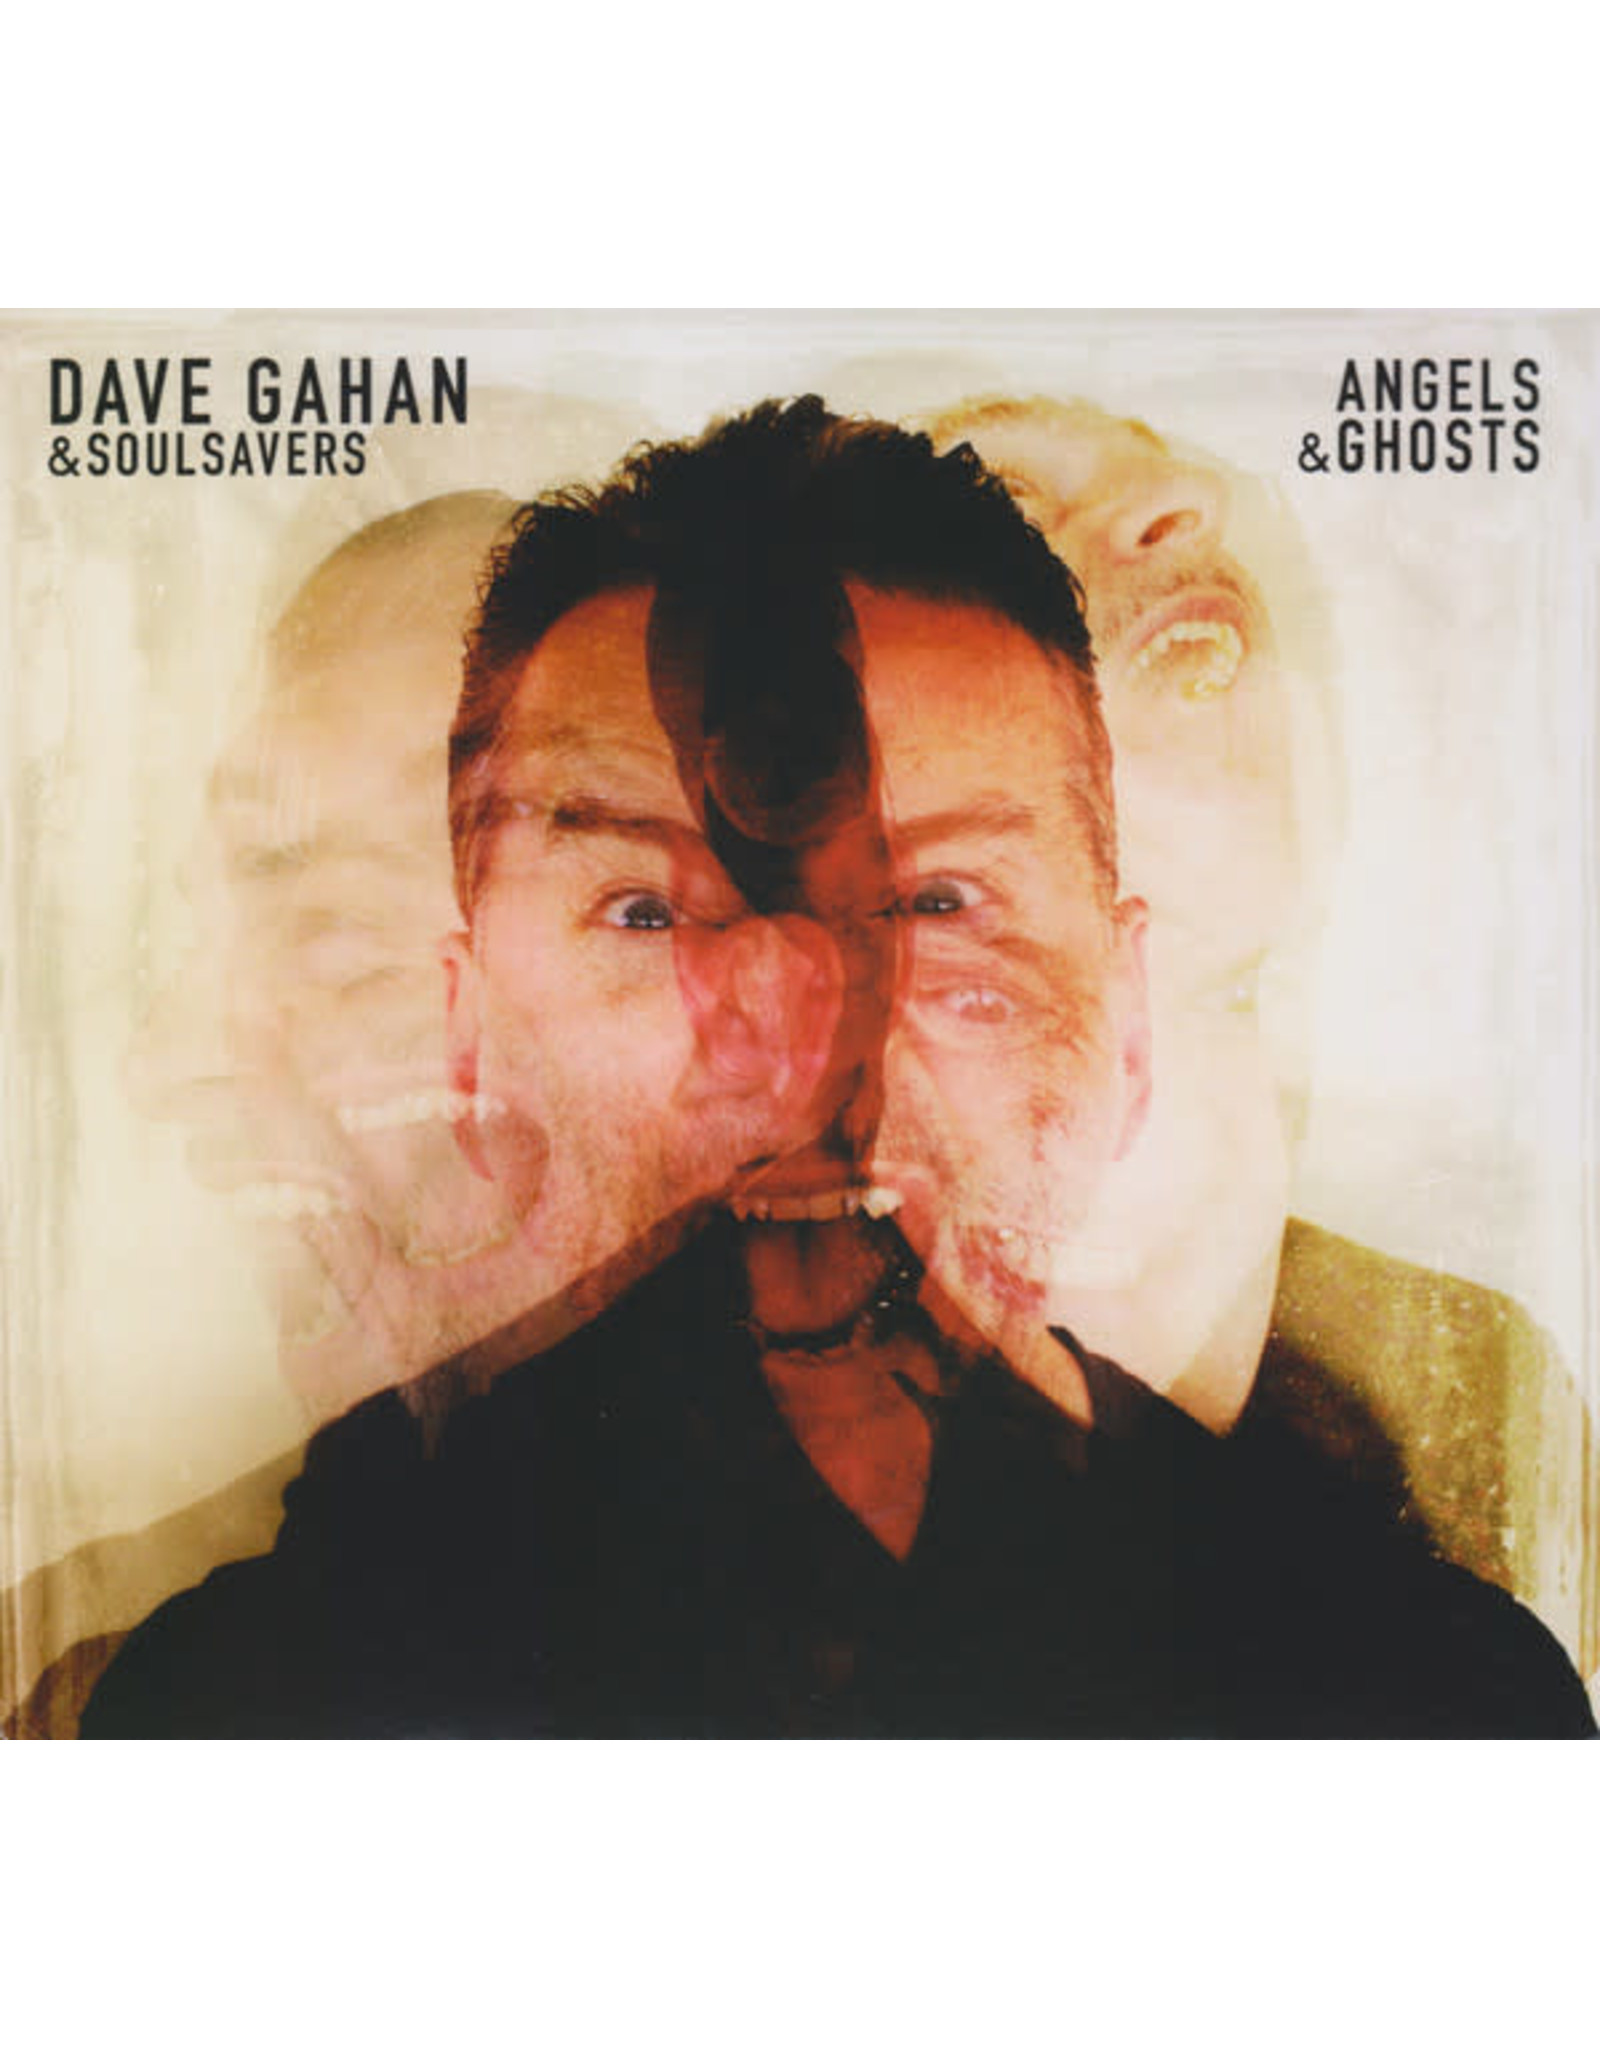 Gahan, Dave & Soul Savers - Angels & Ghosts CD